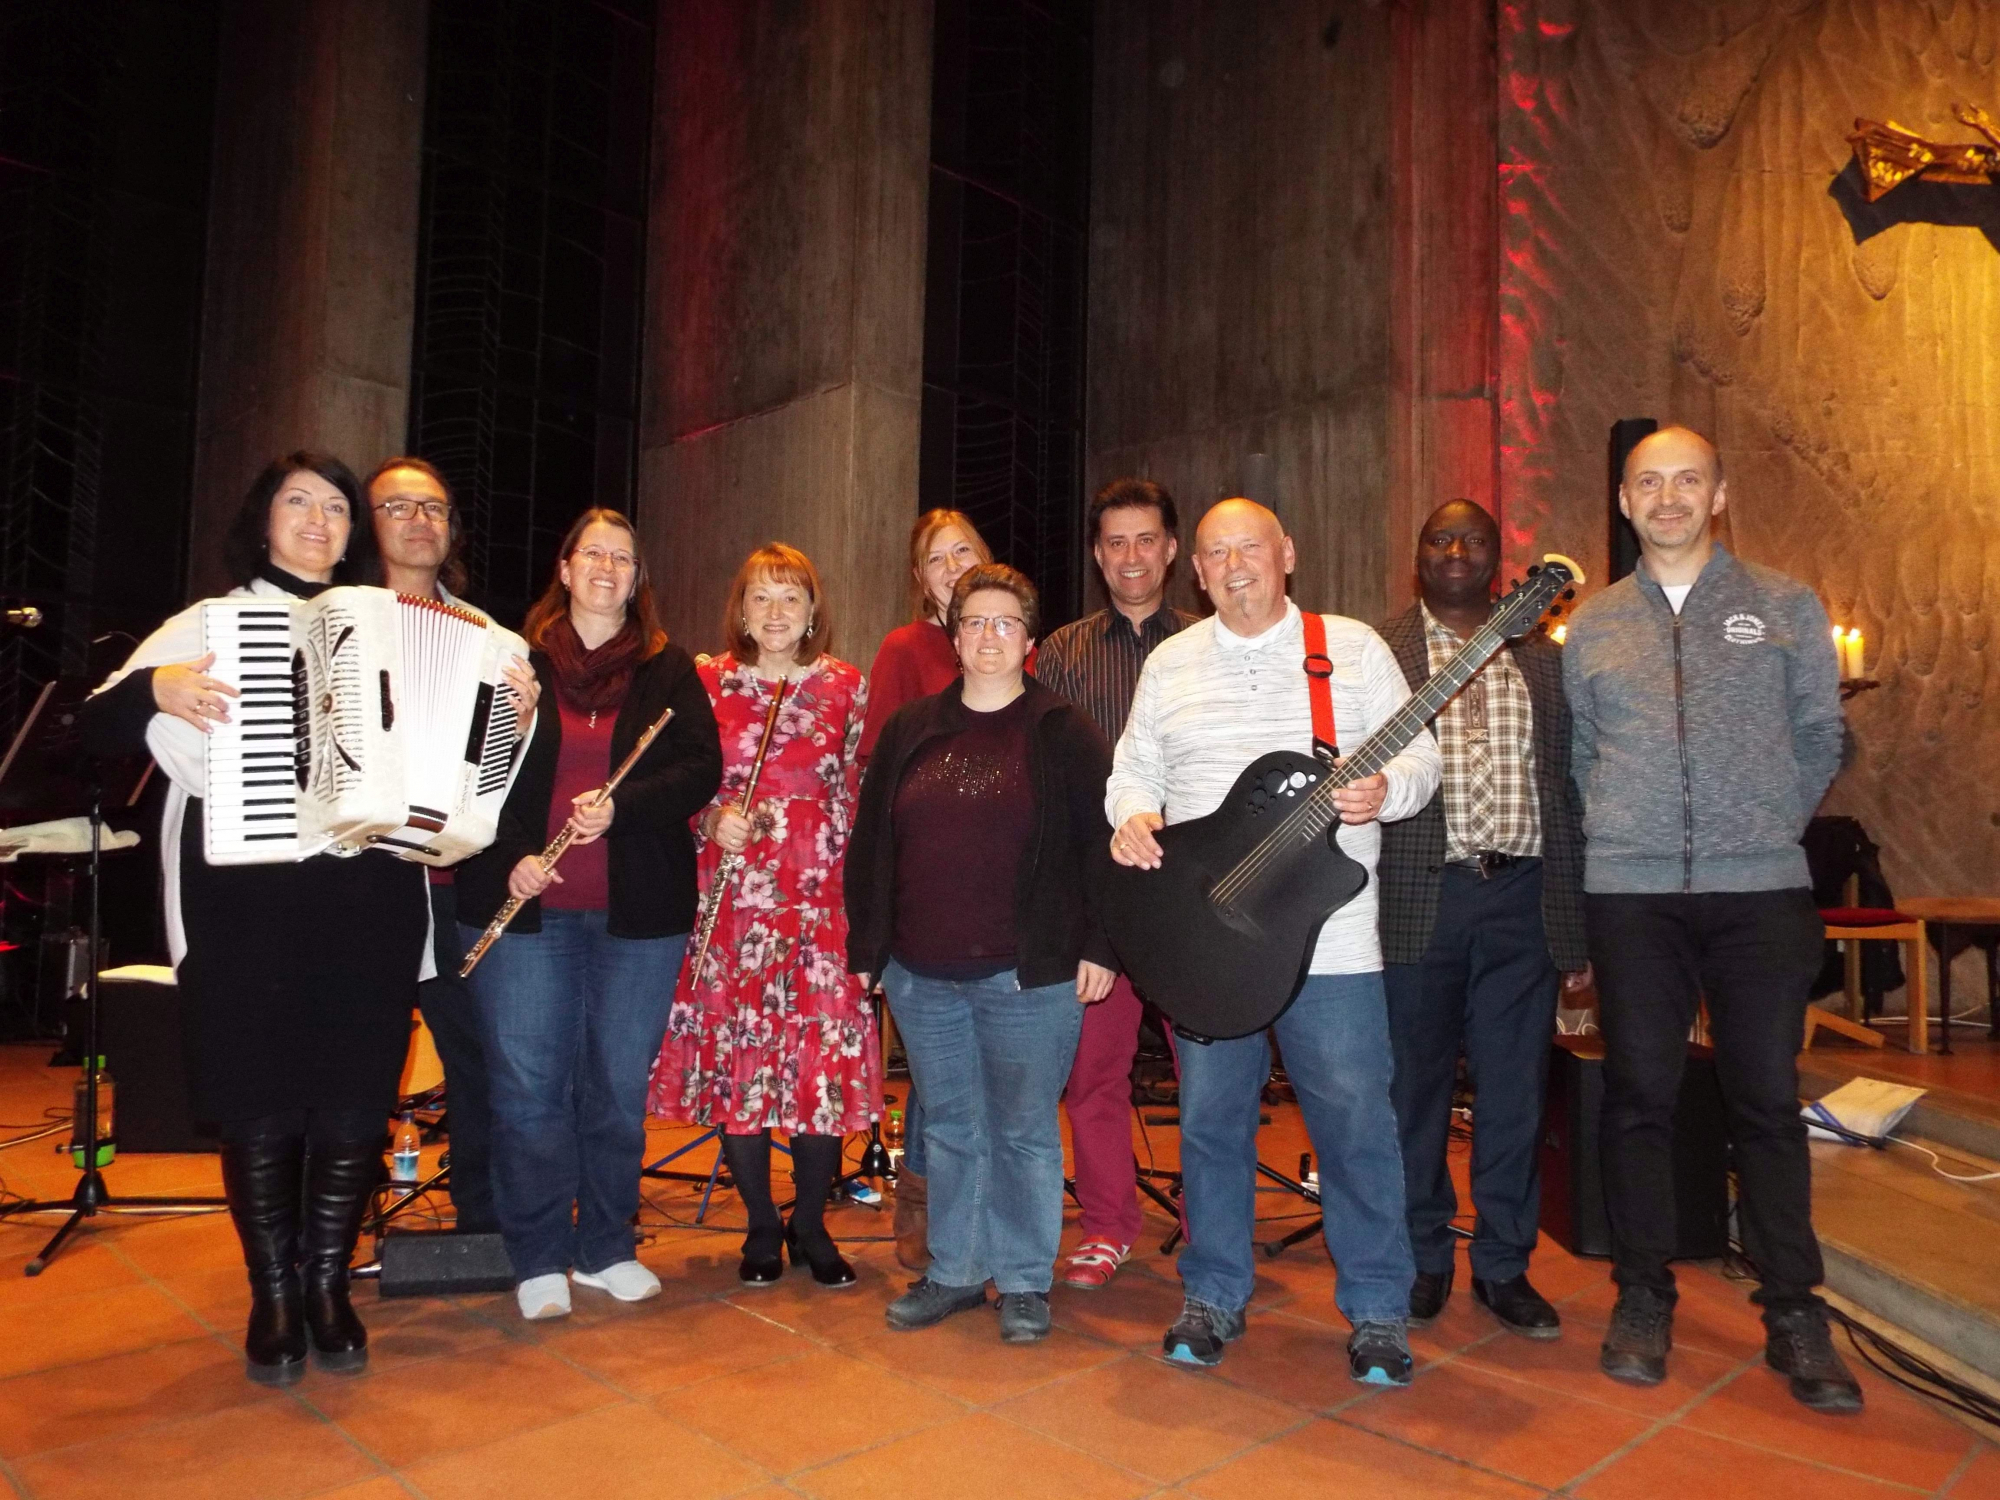 2019_News_2.-Passauer-Worship-Night-19.10.2019-FRESH-Gruppenbild-1